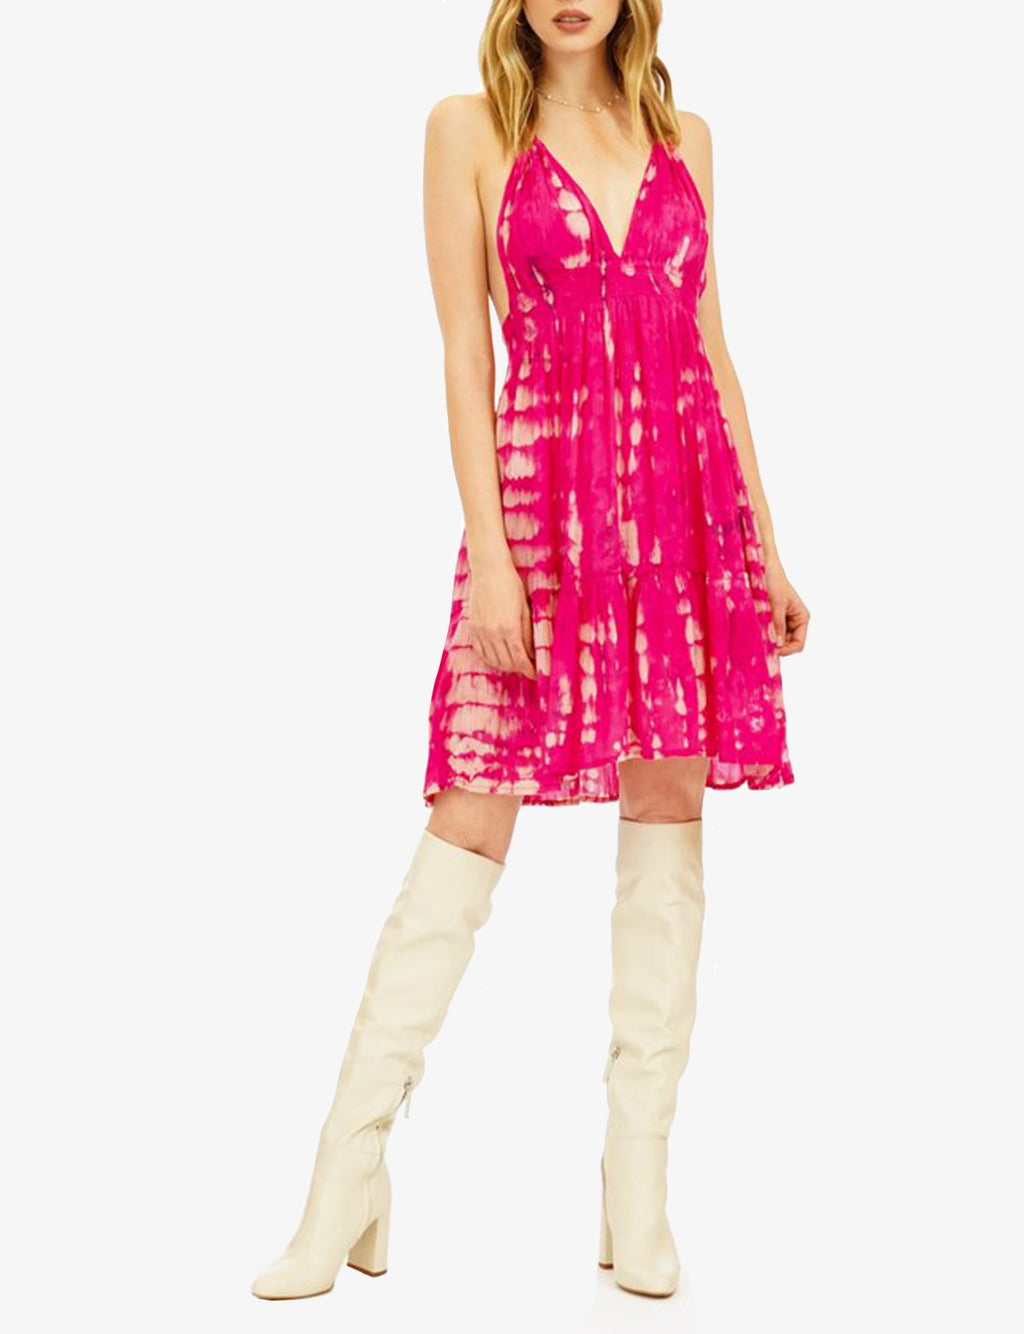 Tiare Hawaii Dawn Dress in Fuchsia Stone